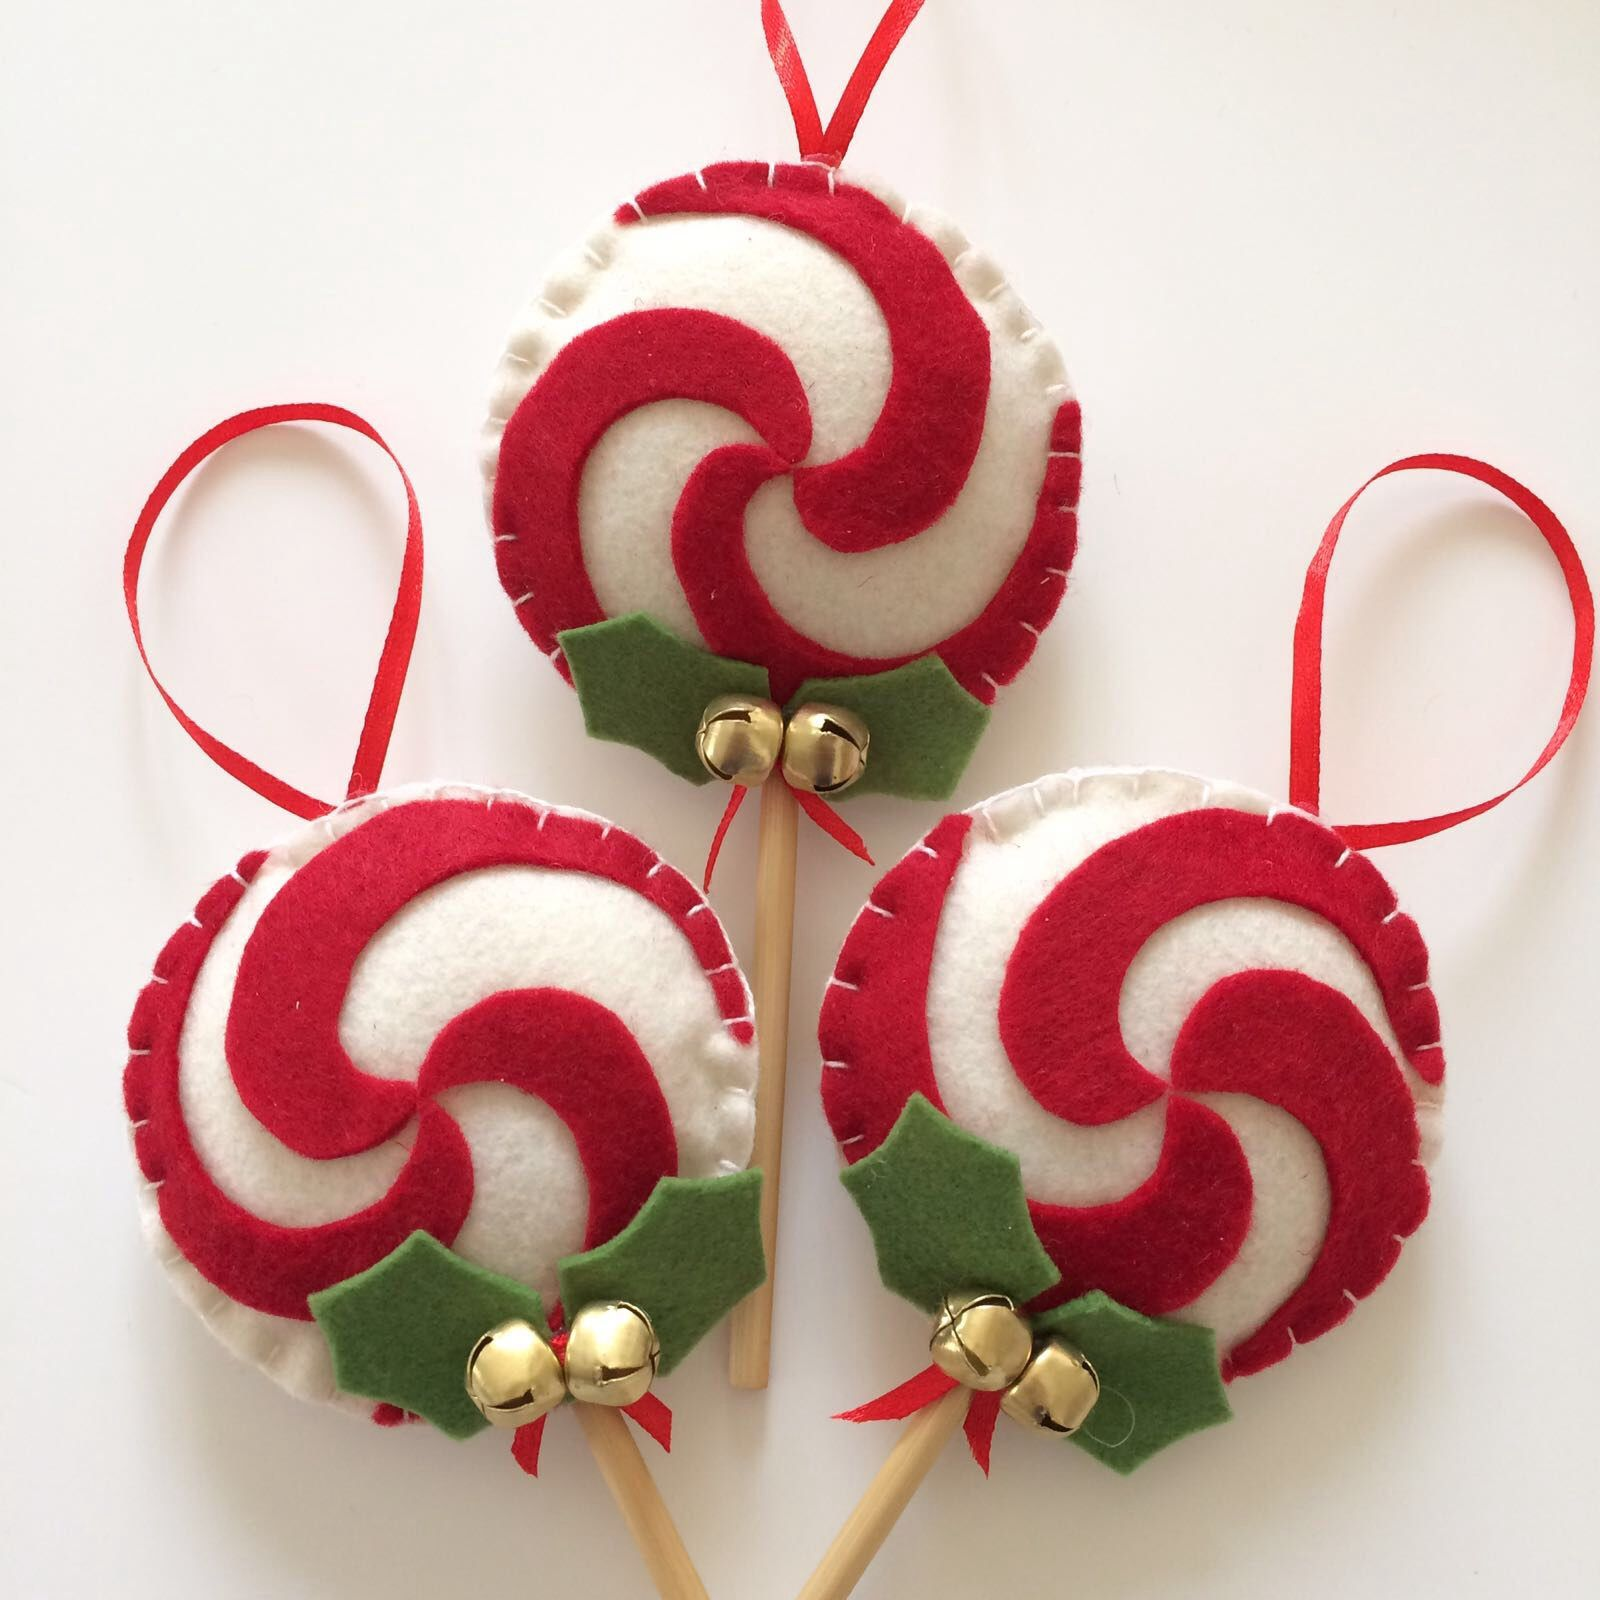 lollipop christmas decorations in soft felt and with rattle by momsbunny on etsy https